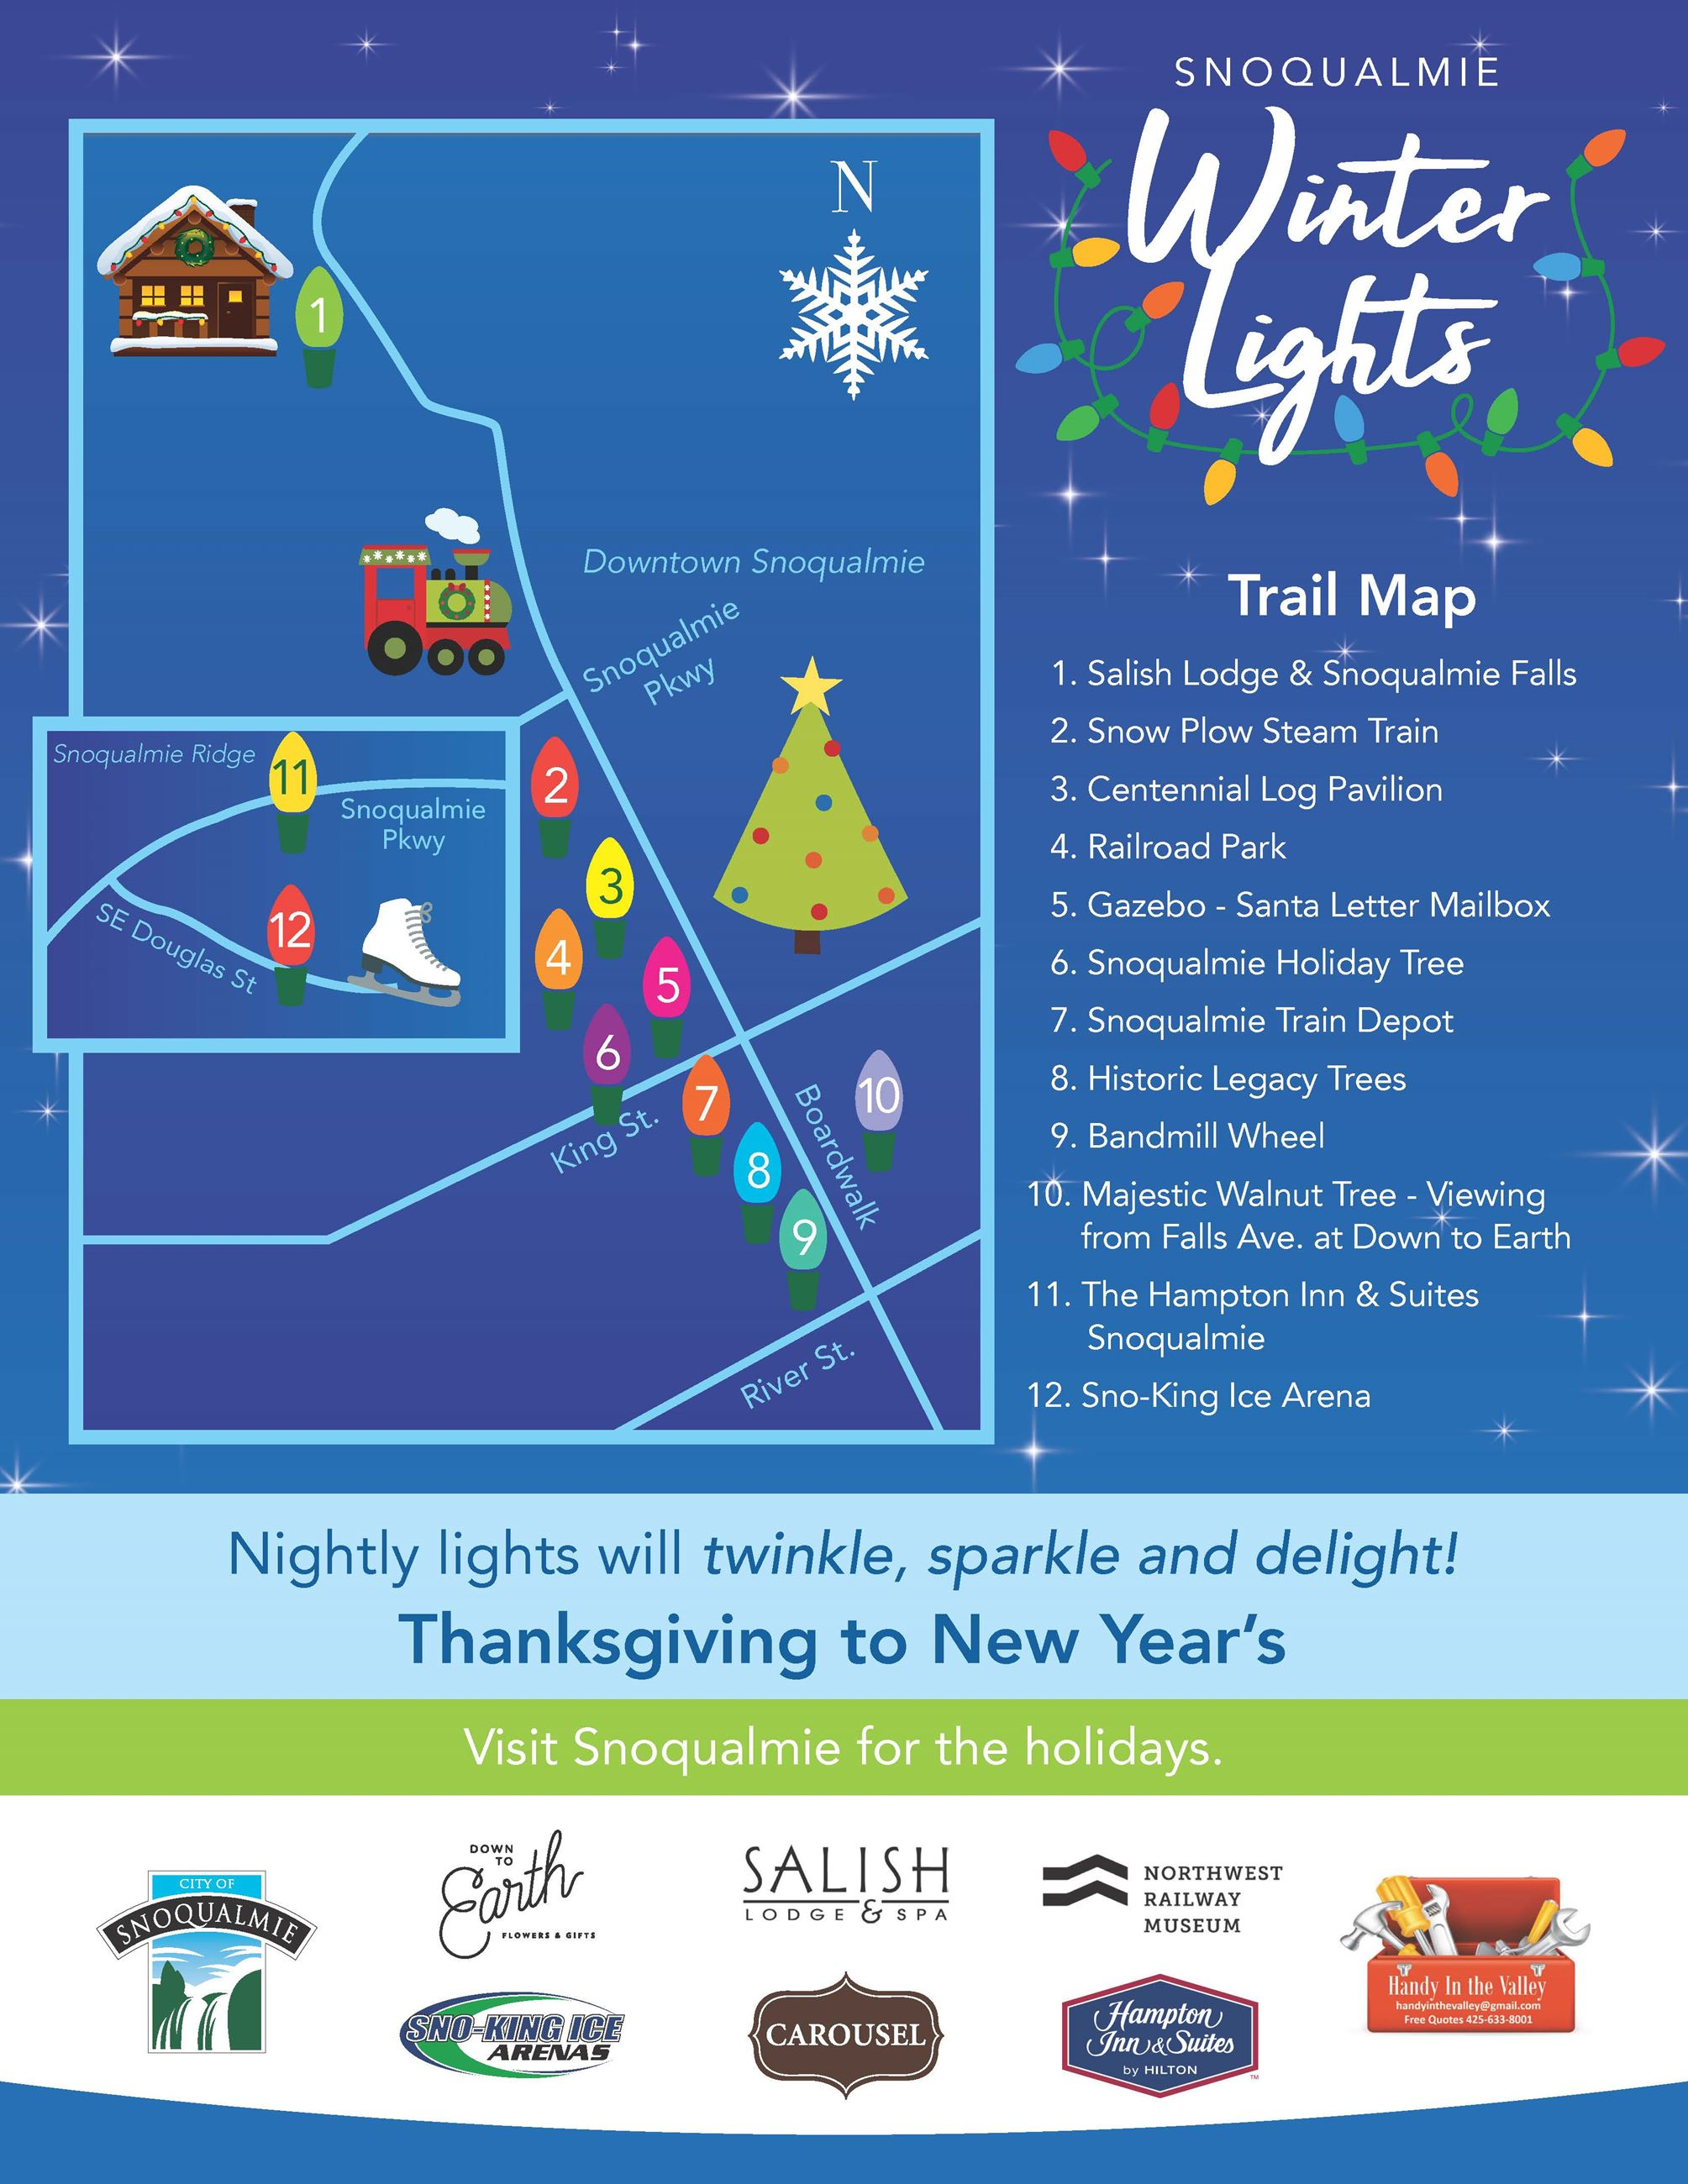 This is a flyer about the 2020 Snoqualmie Winter Lights Trail Map.